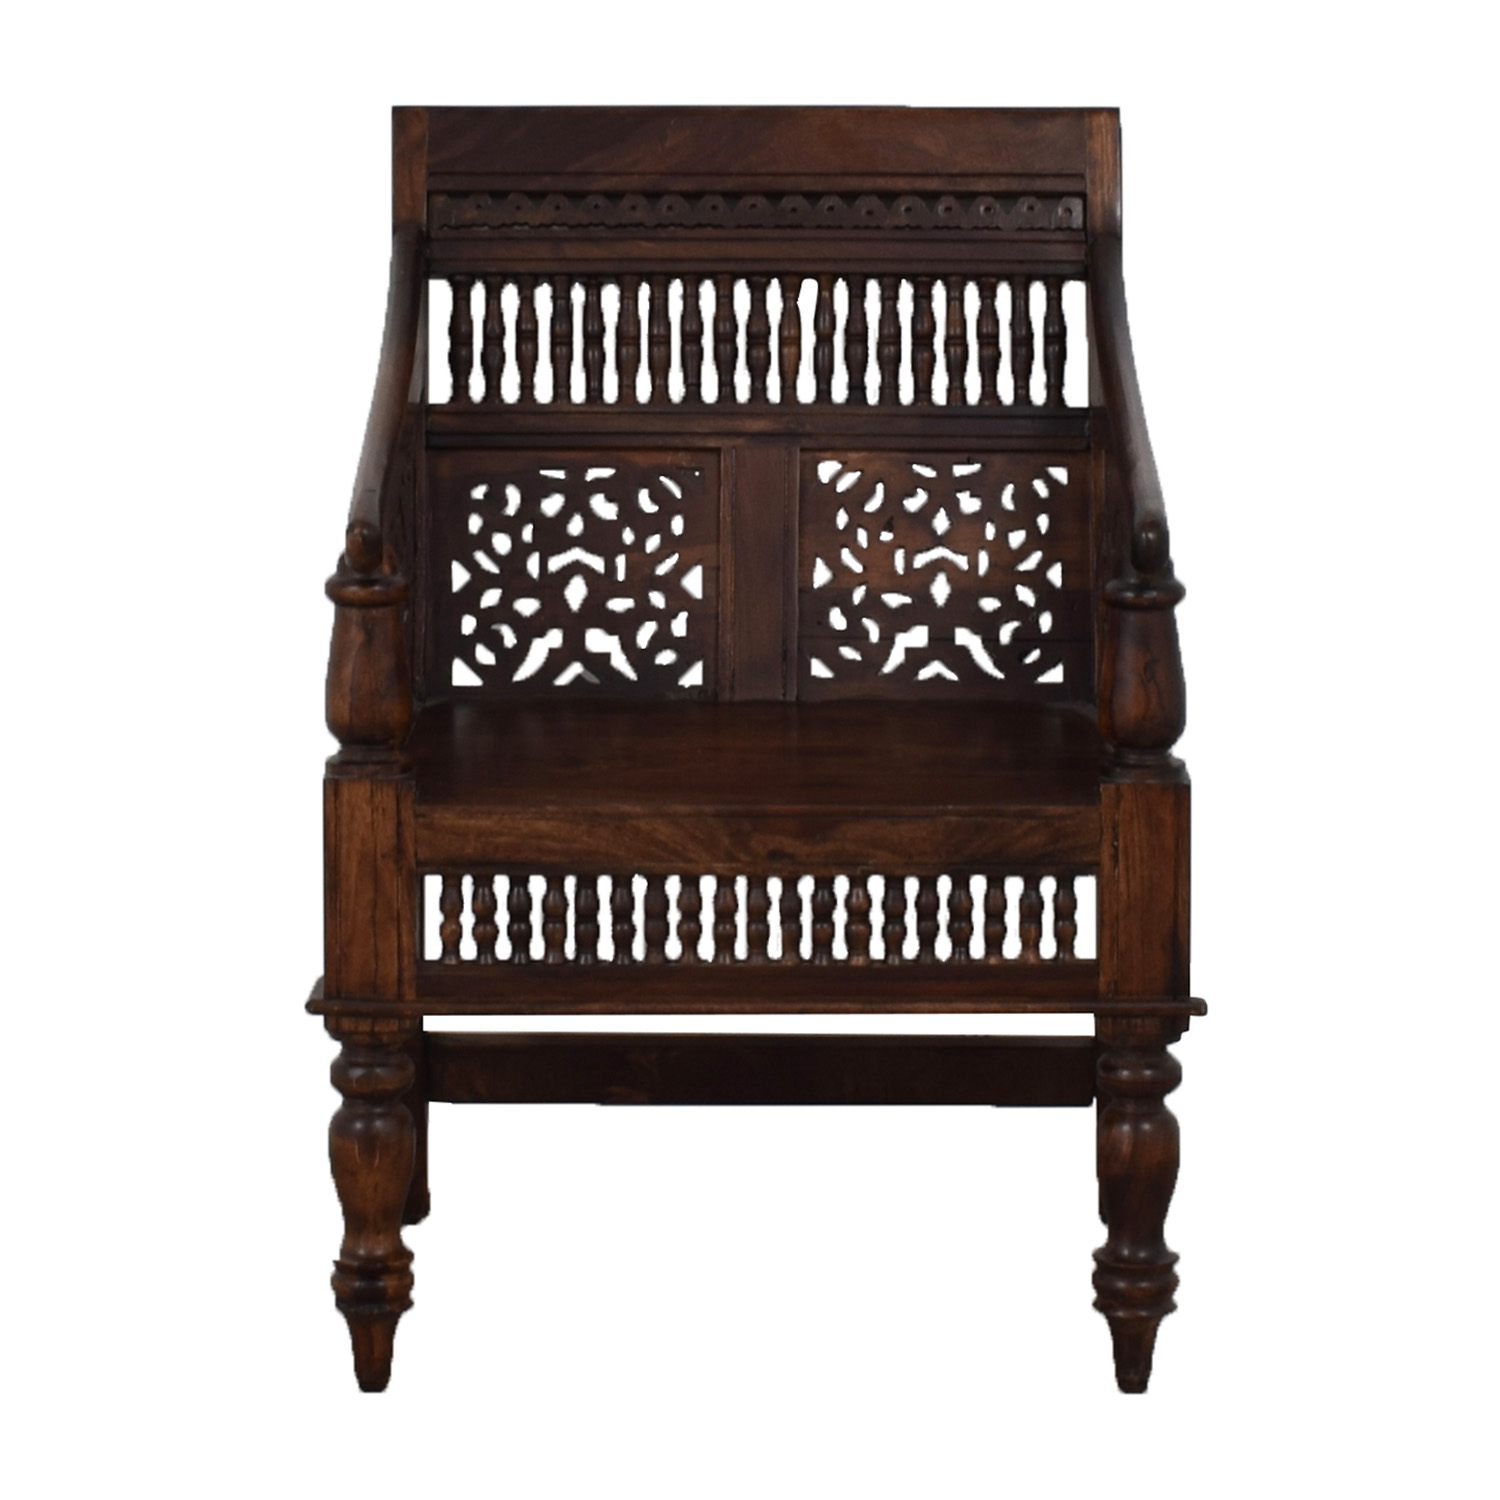 50% OFF   Wooden Accent Chair / Chairs